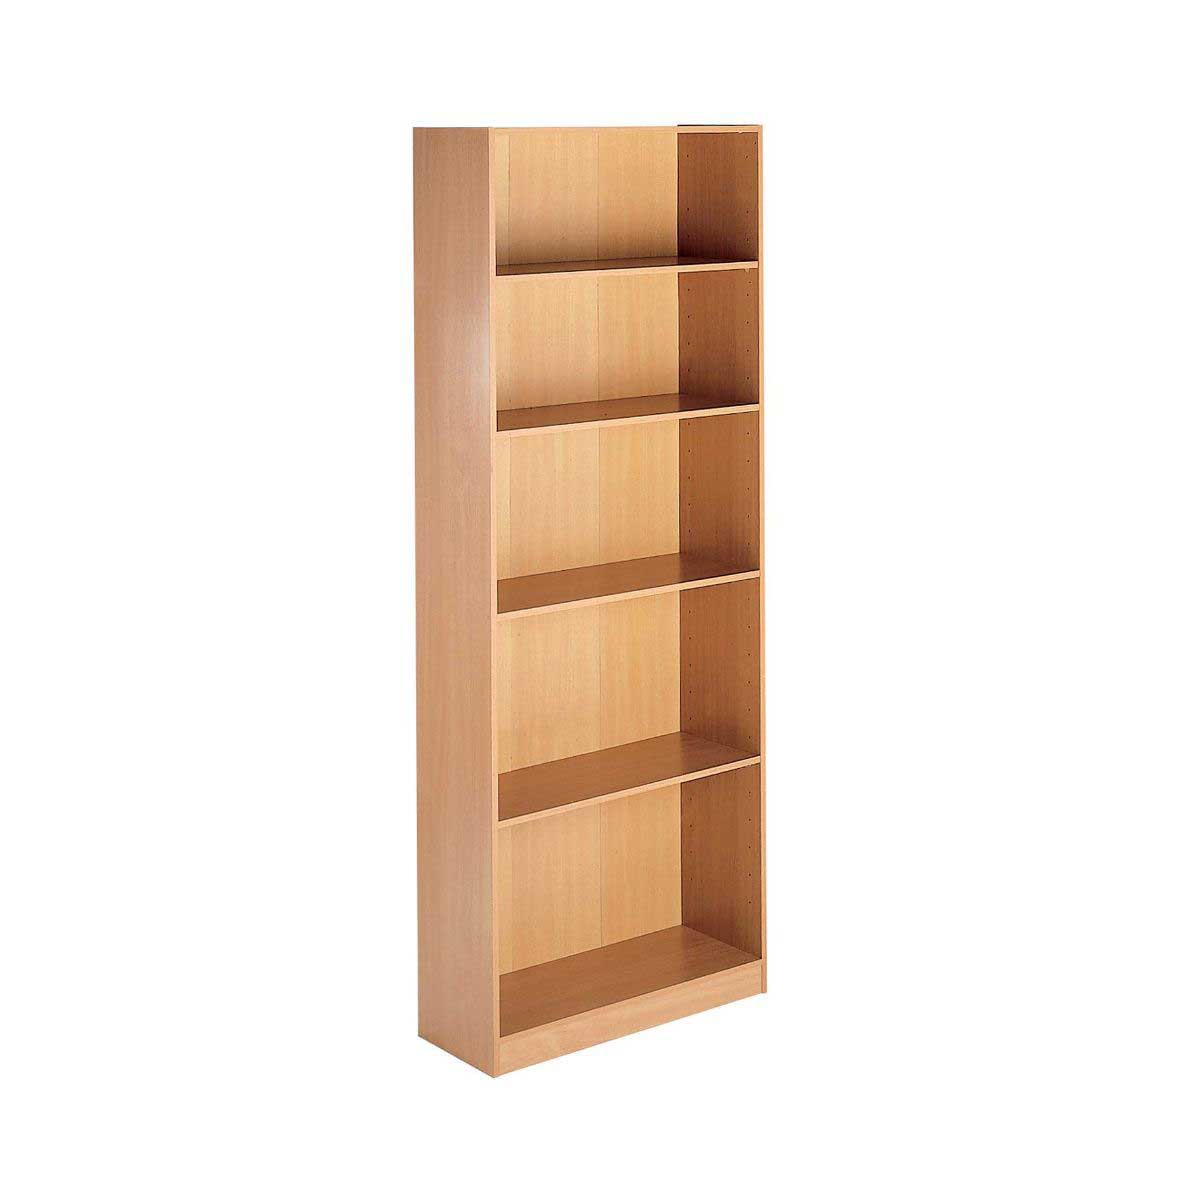 Maestro Tall Bookcase 5 Shelf Open, Beech Effect